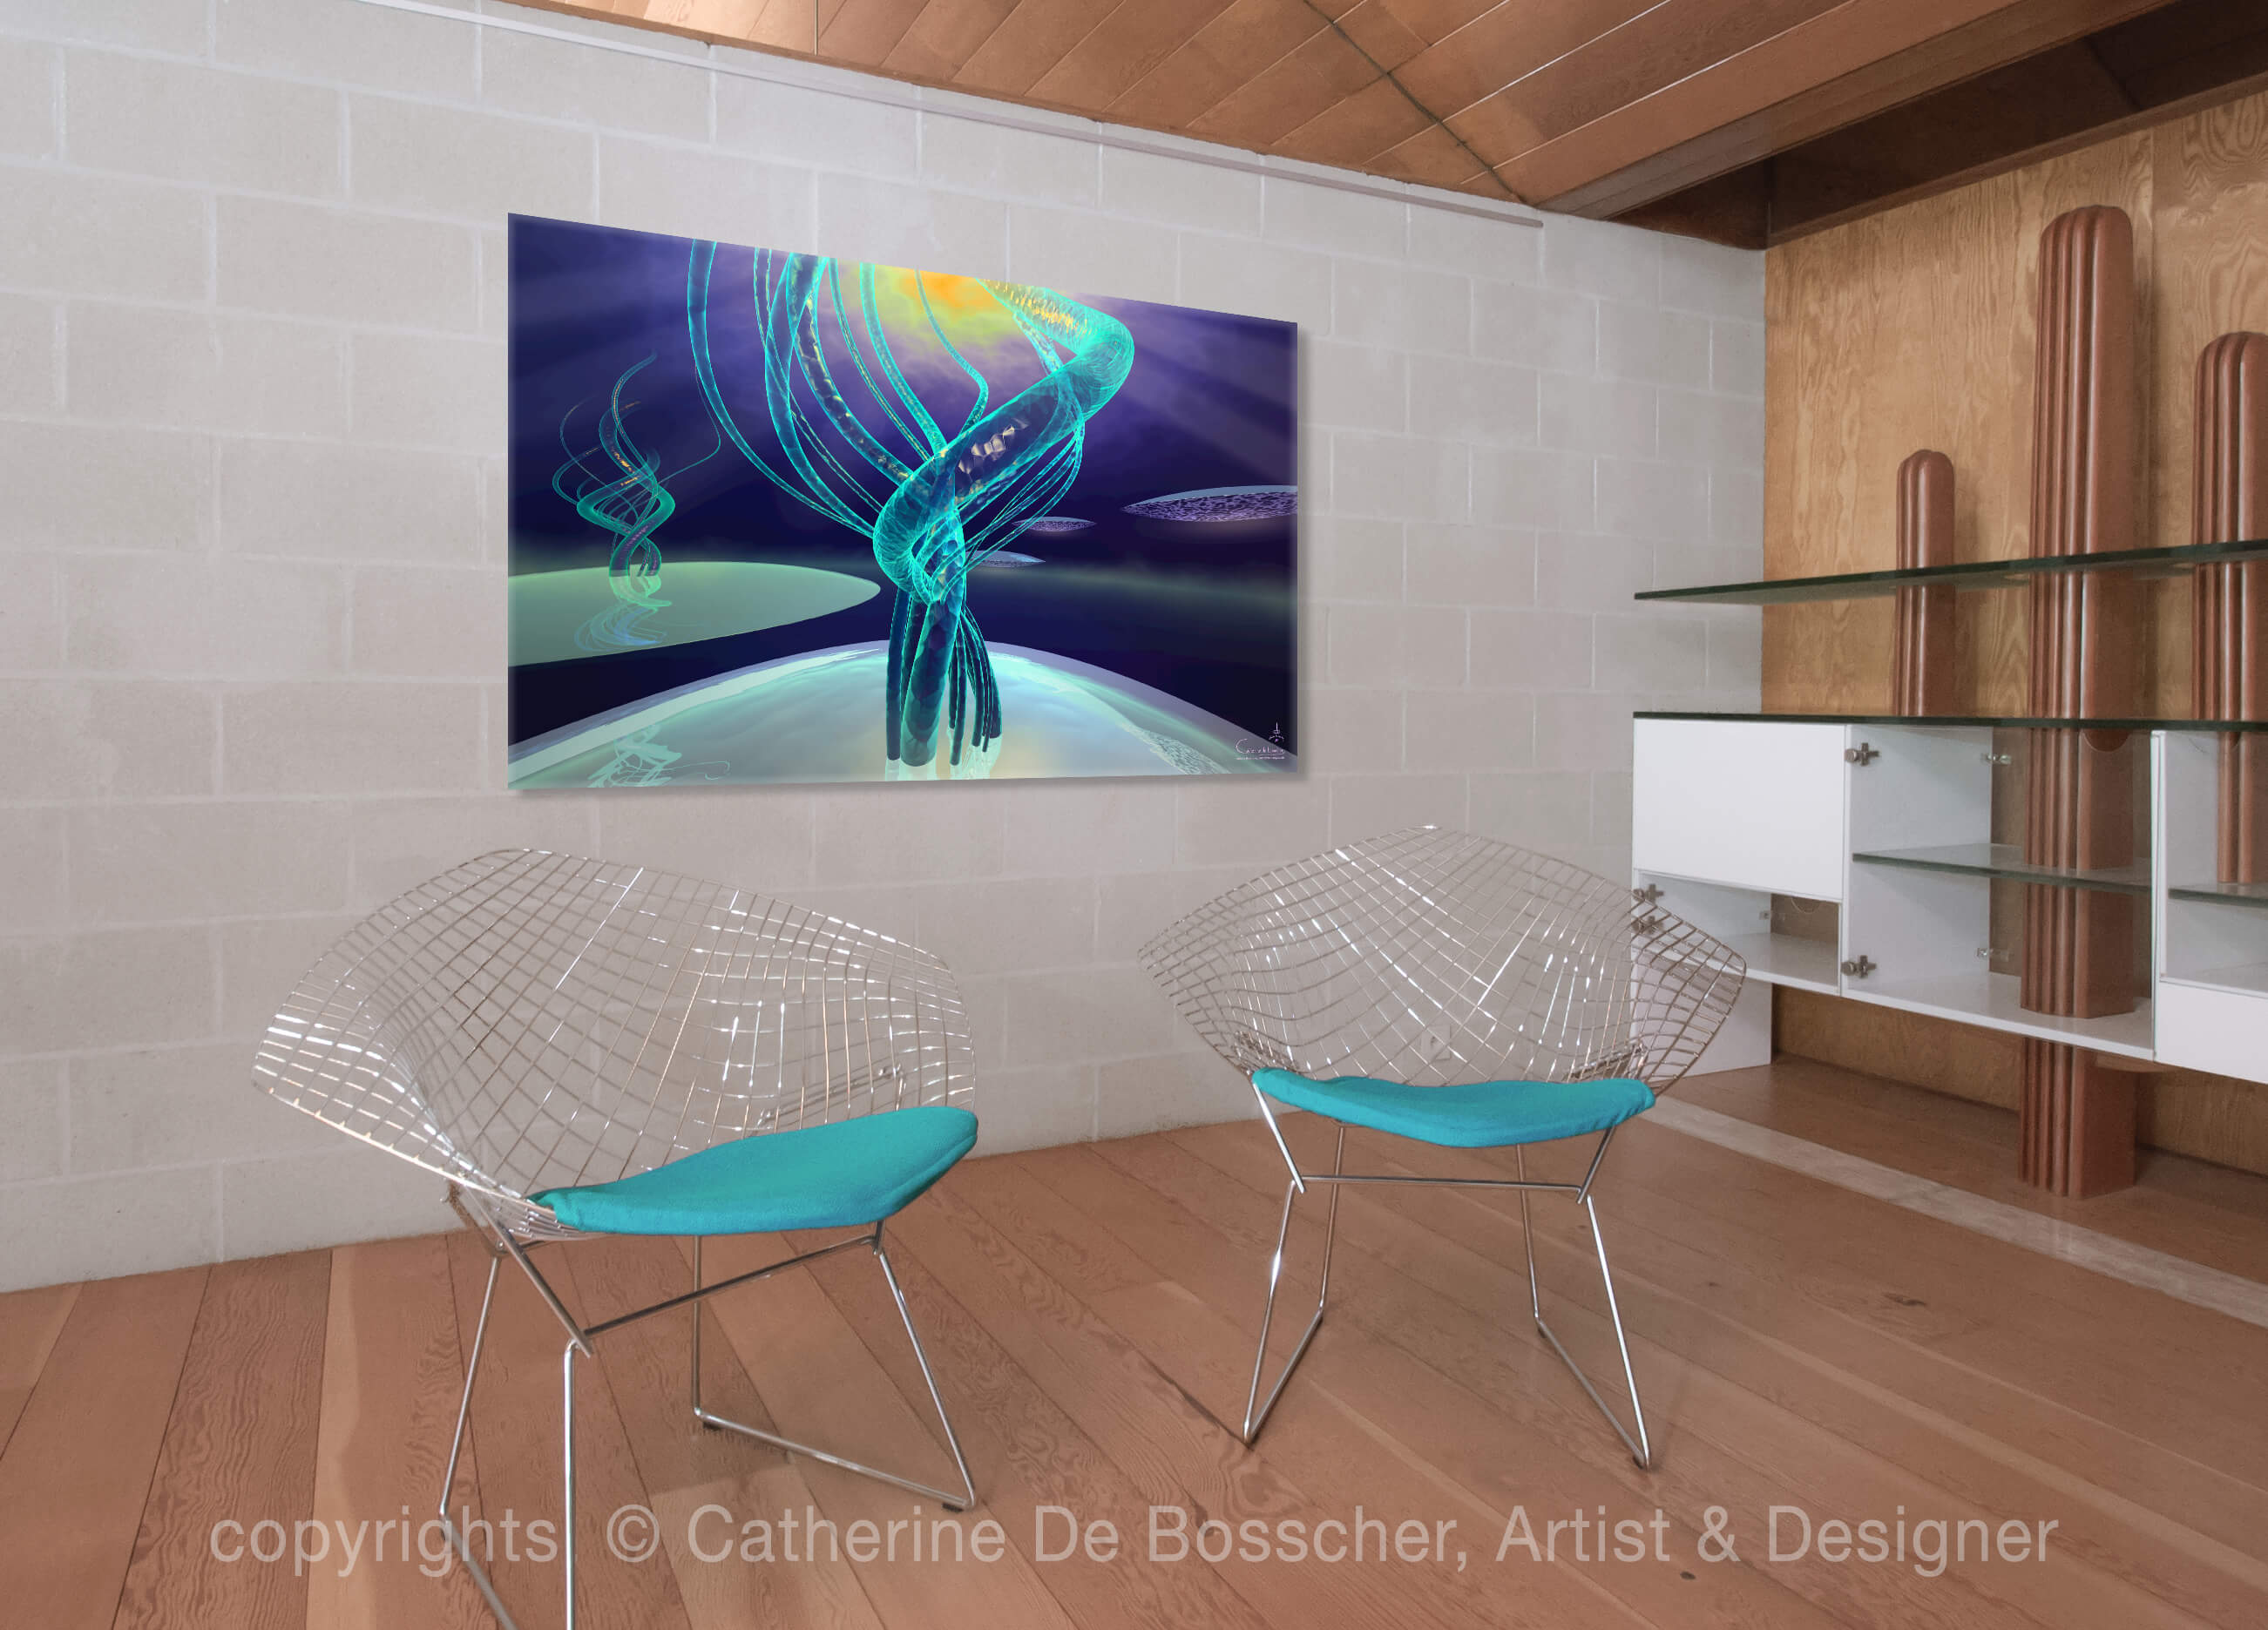 EXOGENESE Artwork 159 x 100 cm by Catherine De Bosscher